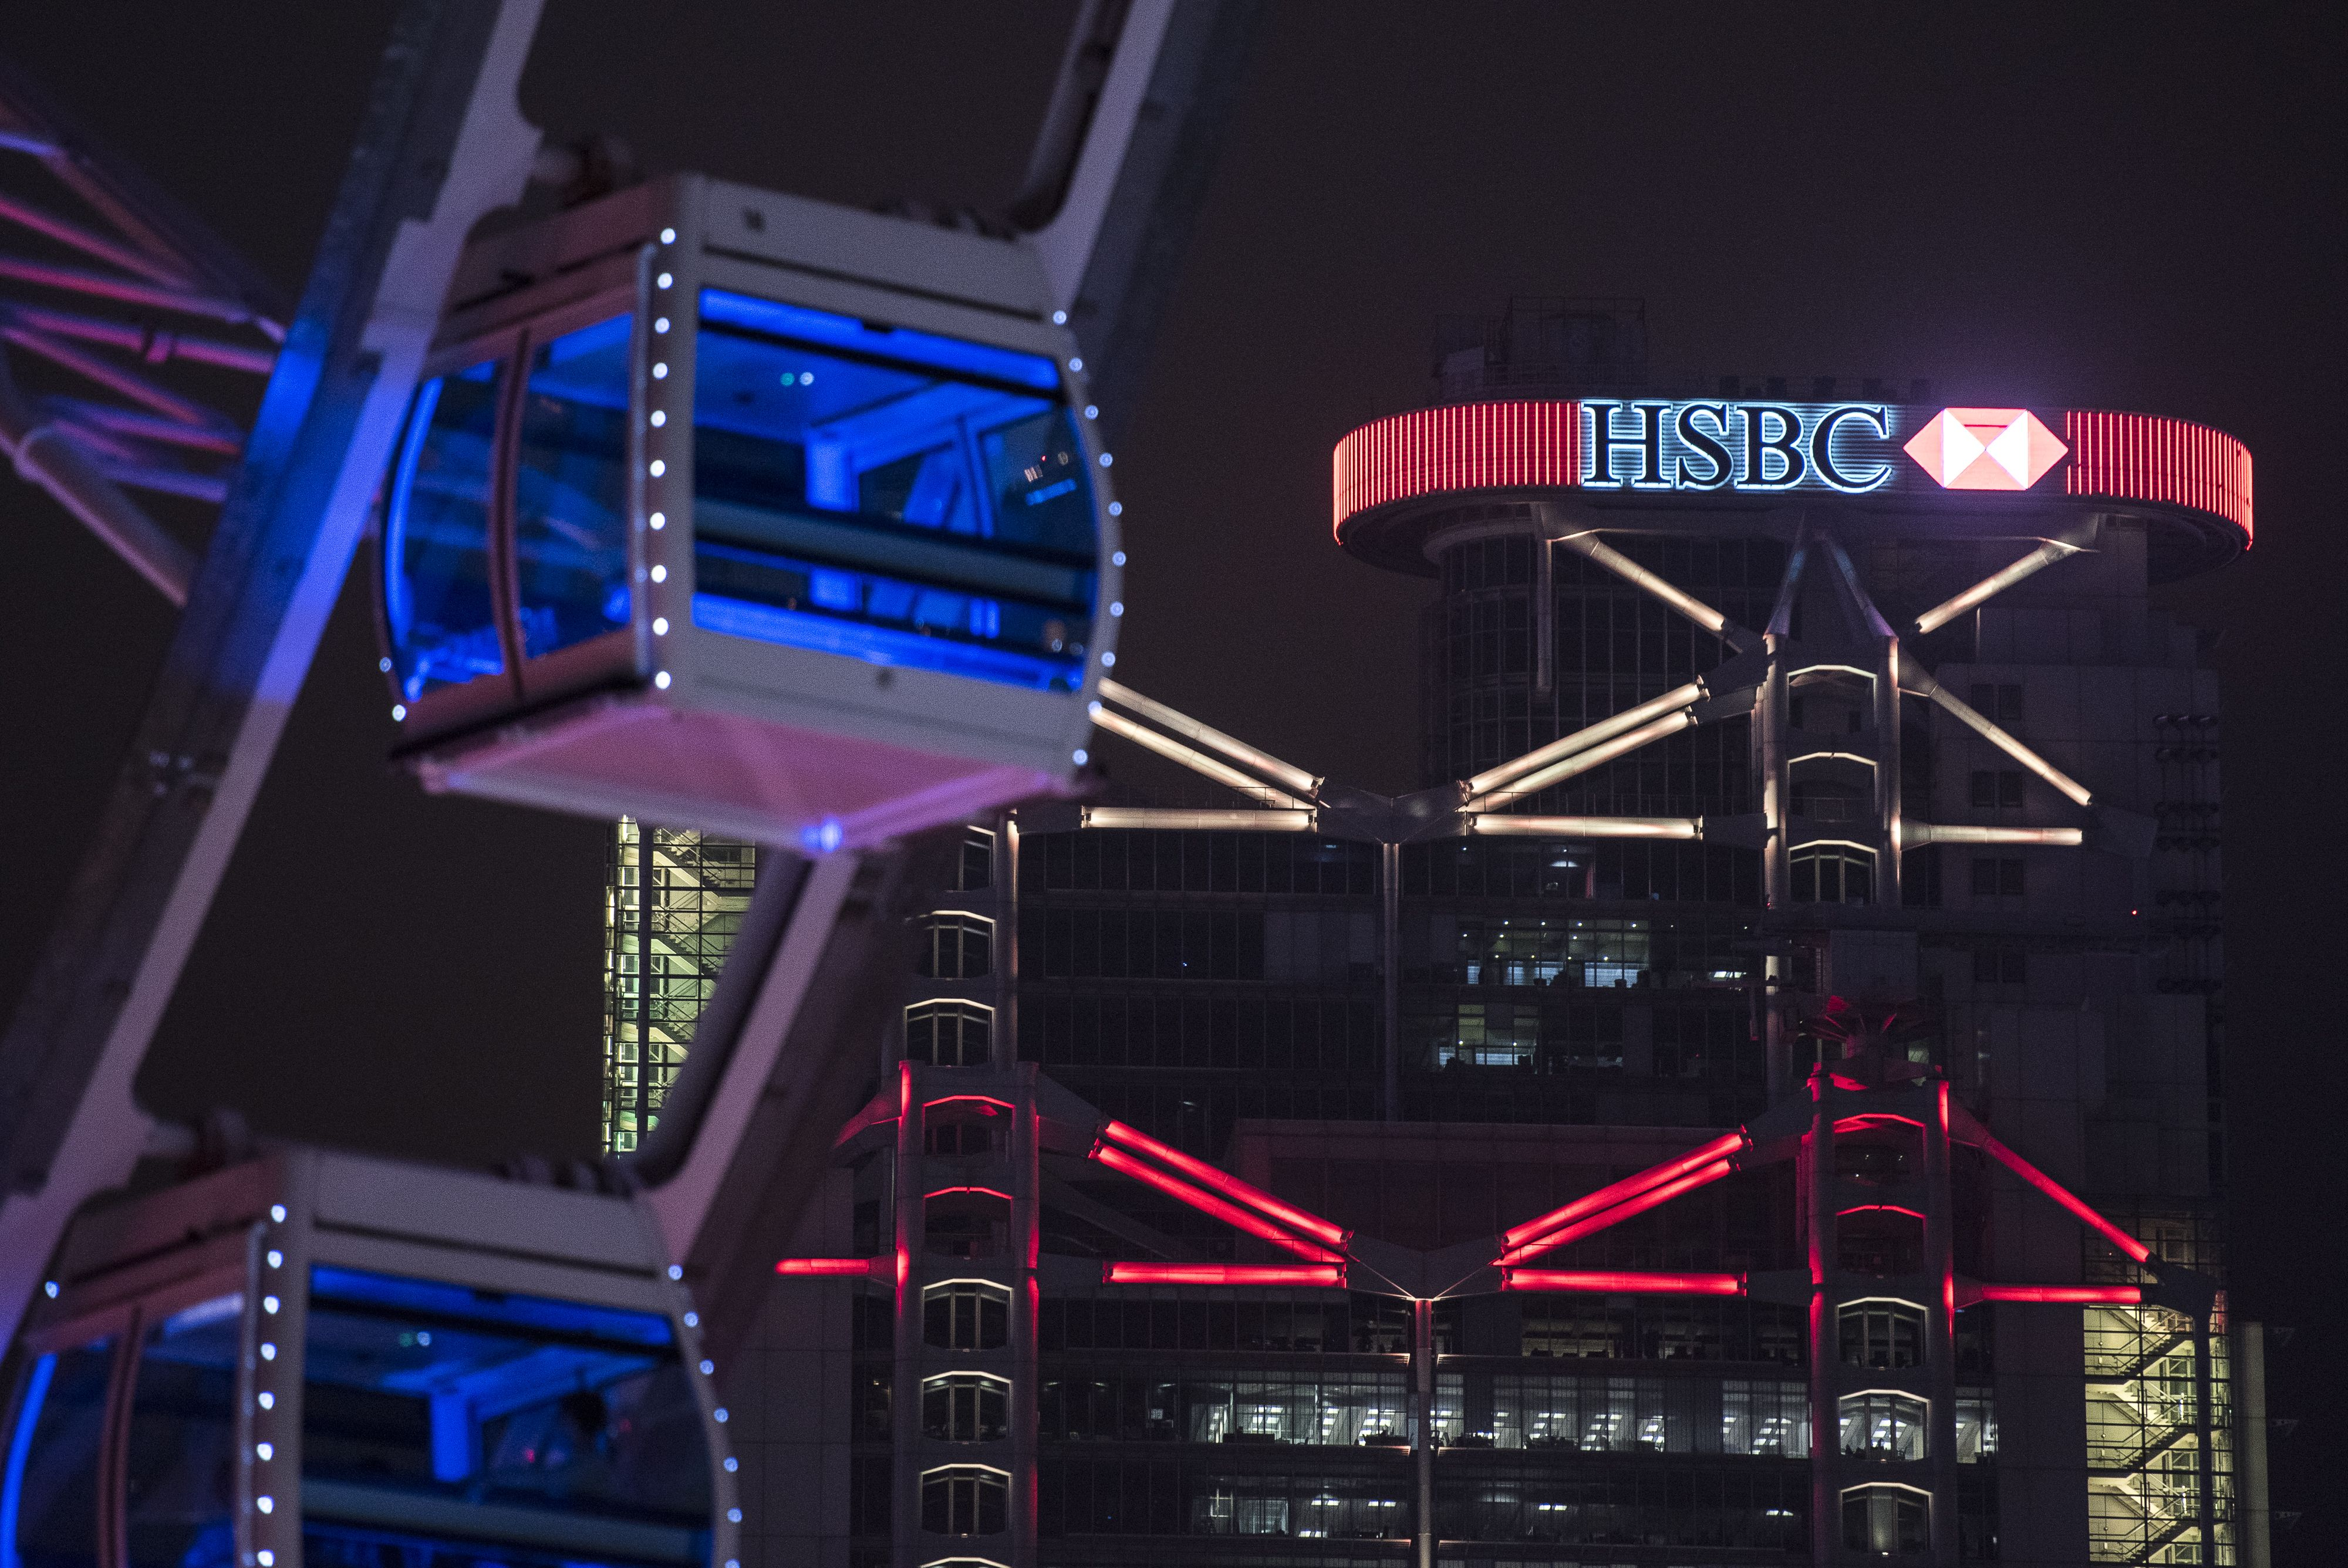 HSBC shares indicated to open up 3 4% after HQ decision, Banking